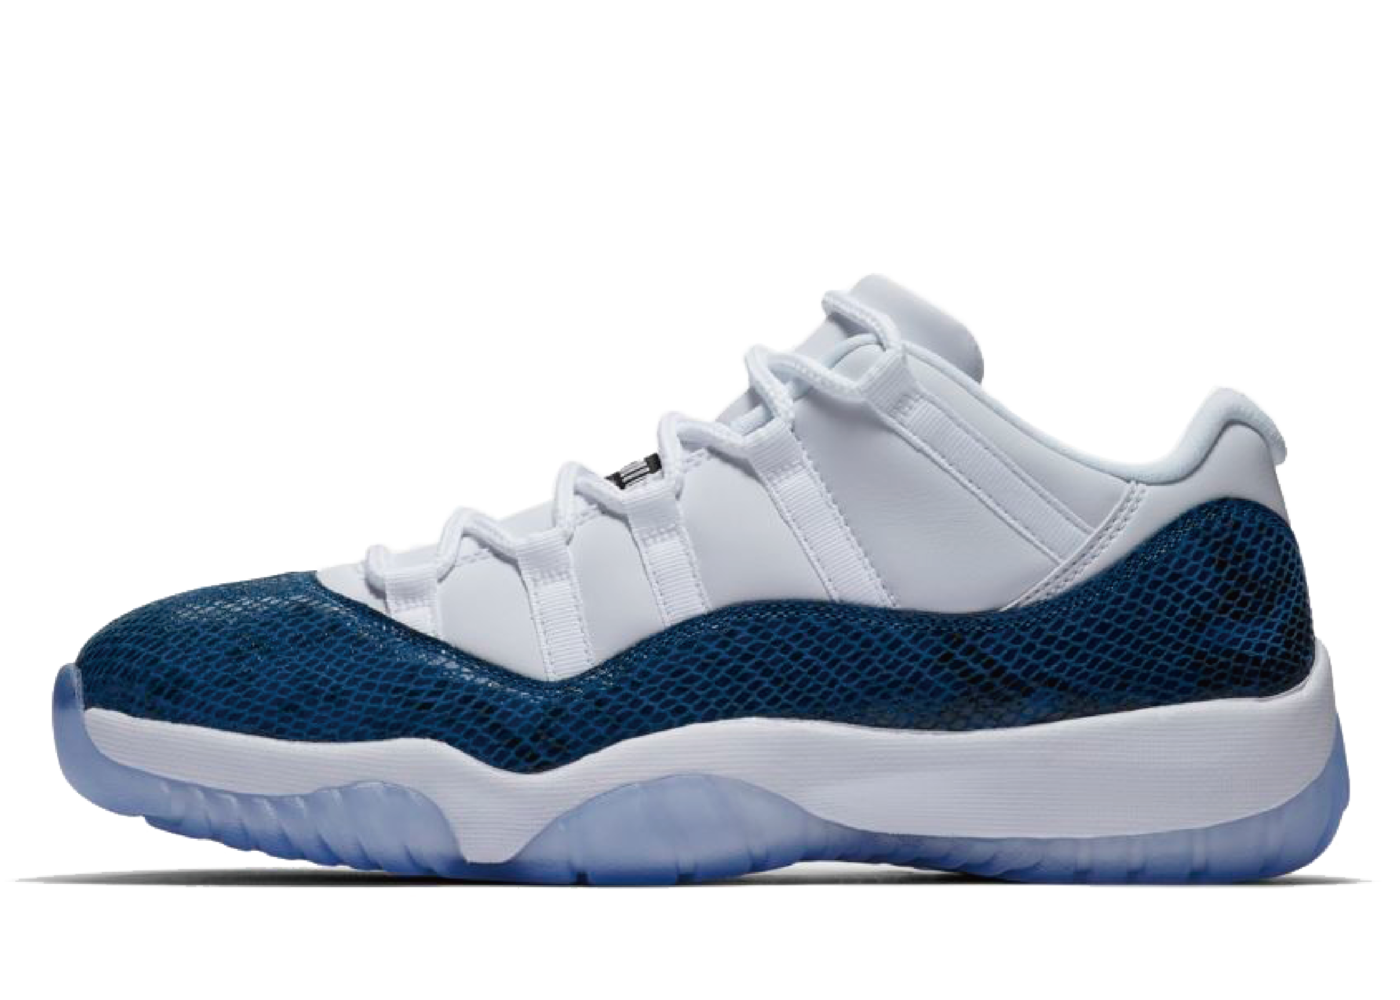 Nike Air Jordan 11 Retro Low Snake Navy (2019)の写真